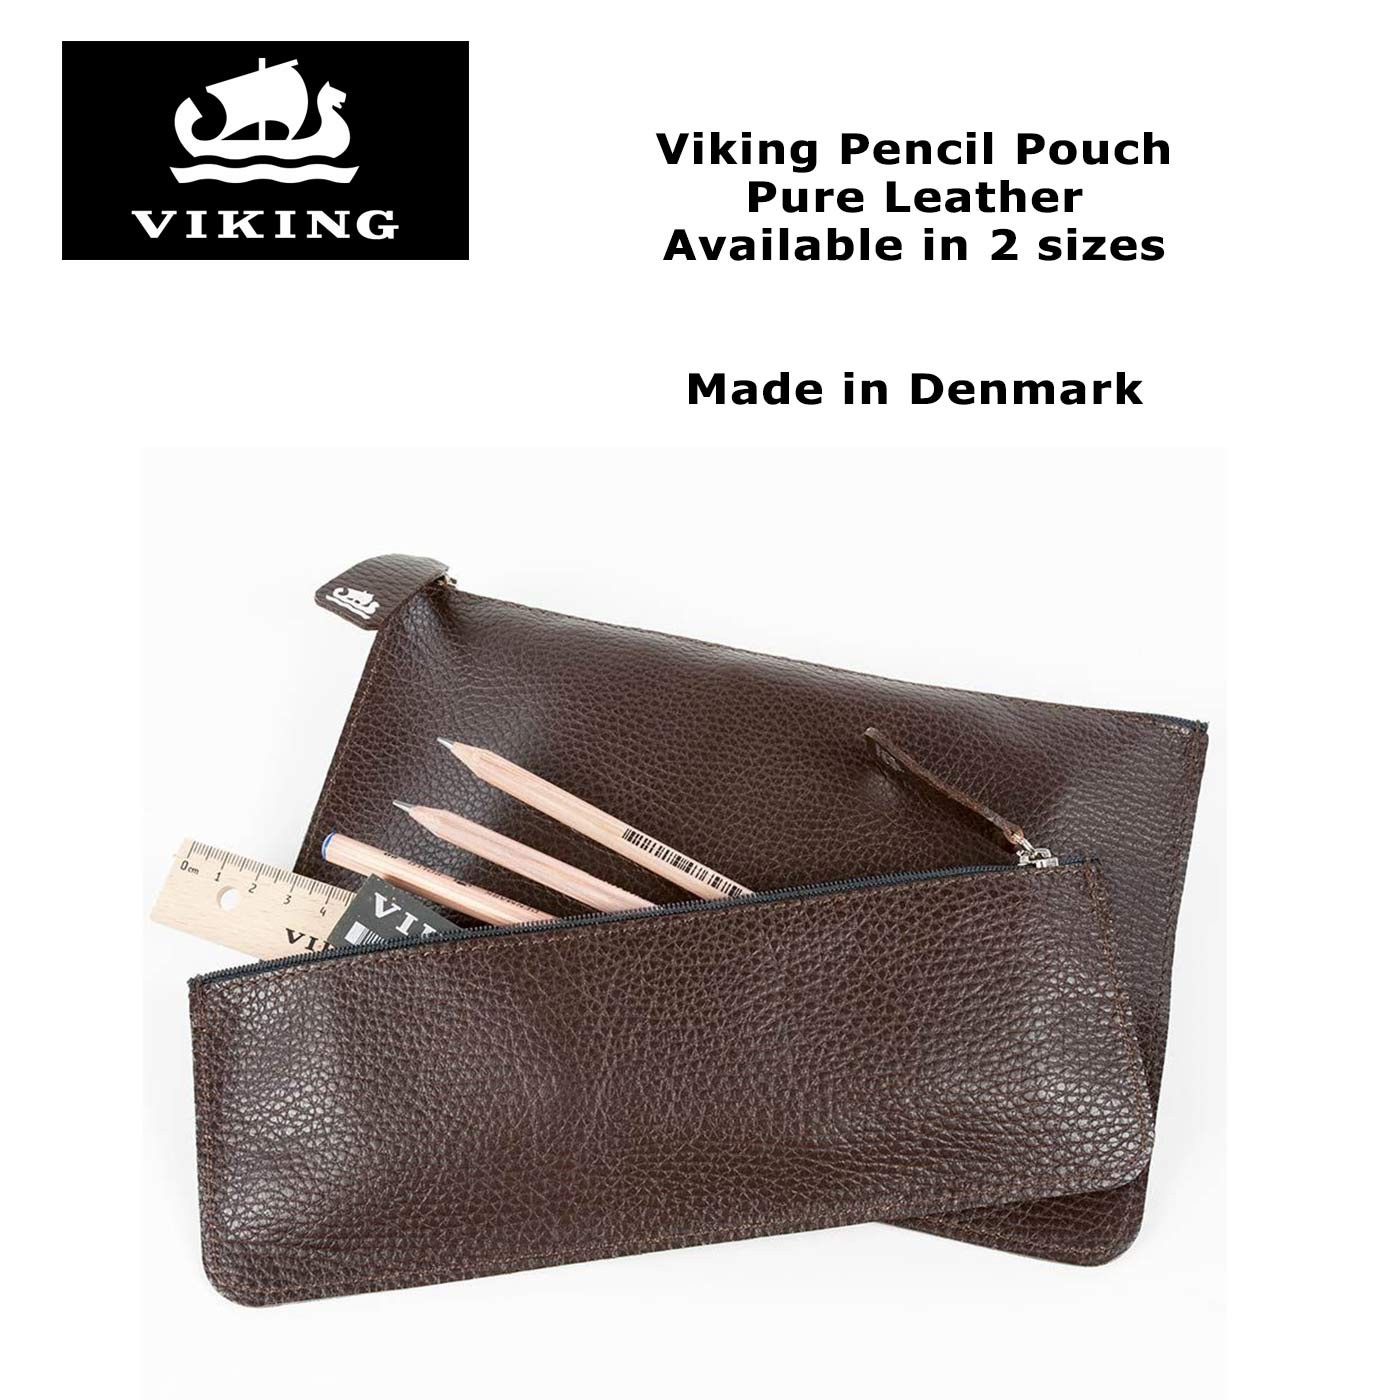 Viking pure leather flat pouch pencil case made in for Viking pencils